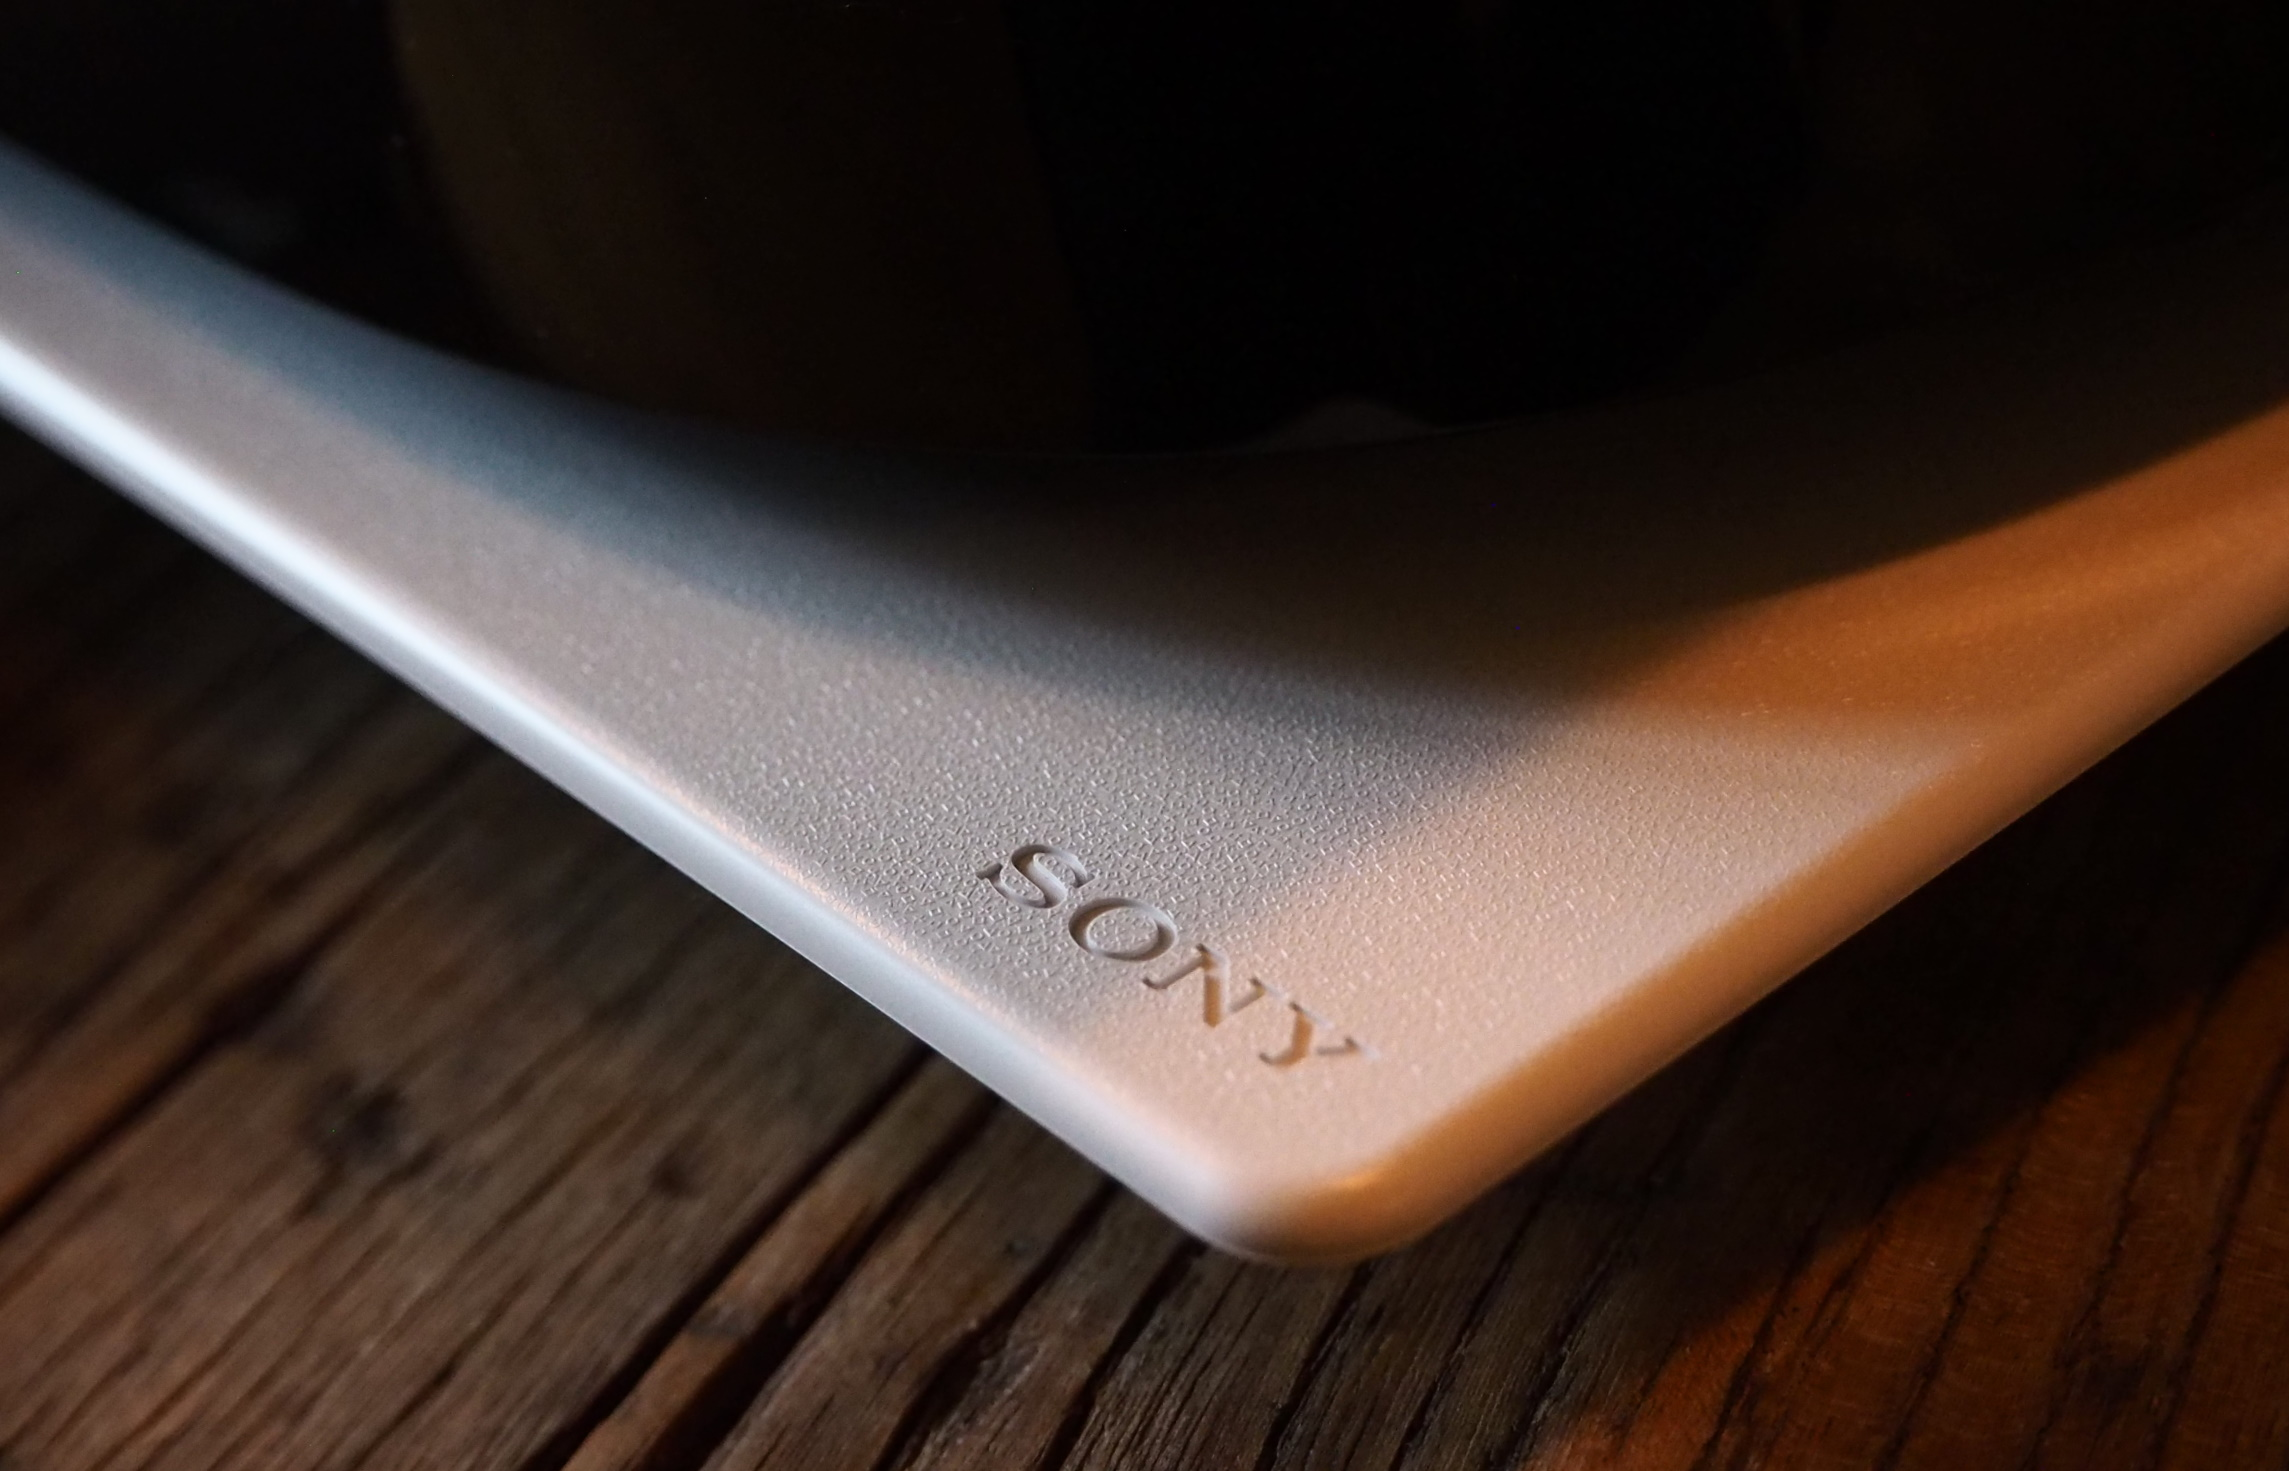 Close up of the Sony logo on the PS5 and tiny characters making a pattern.